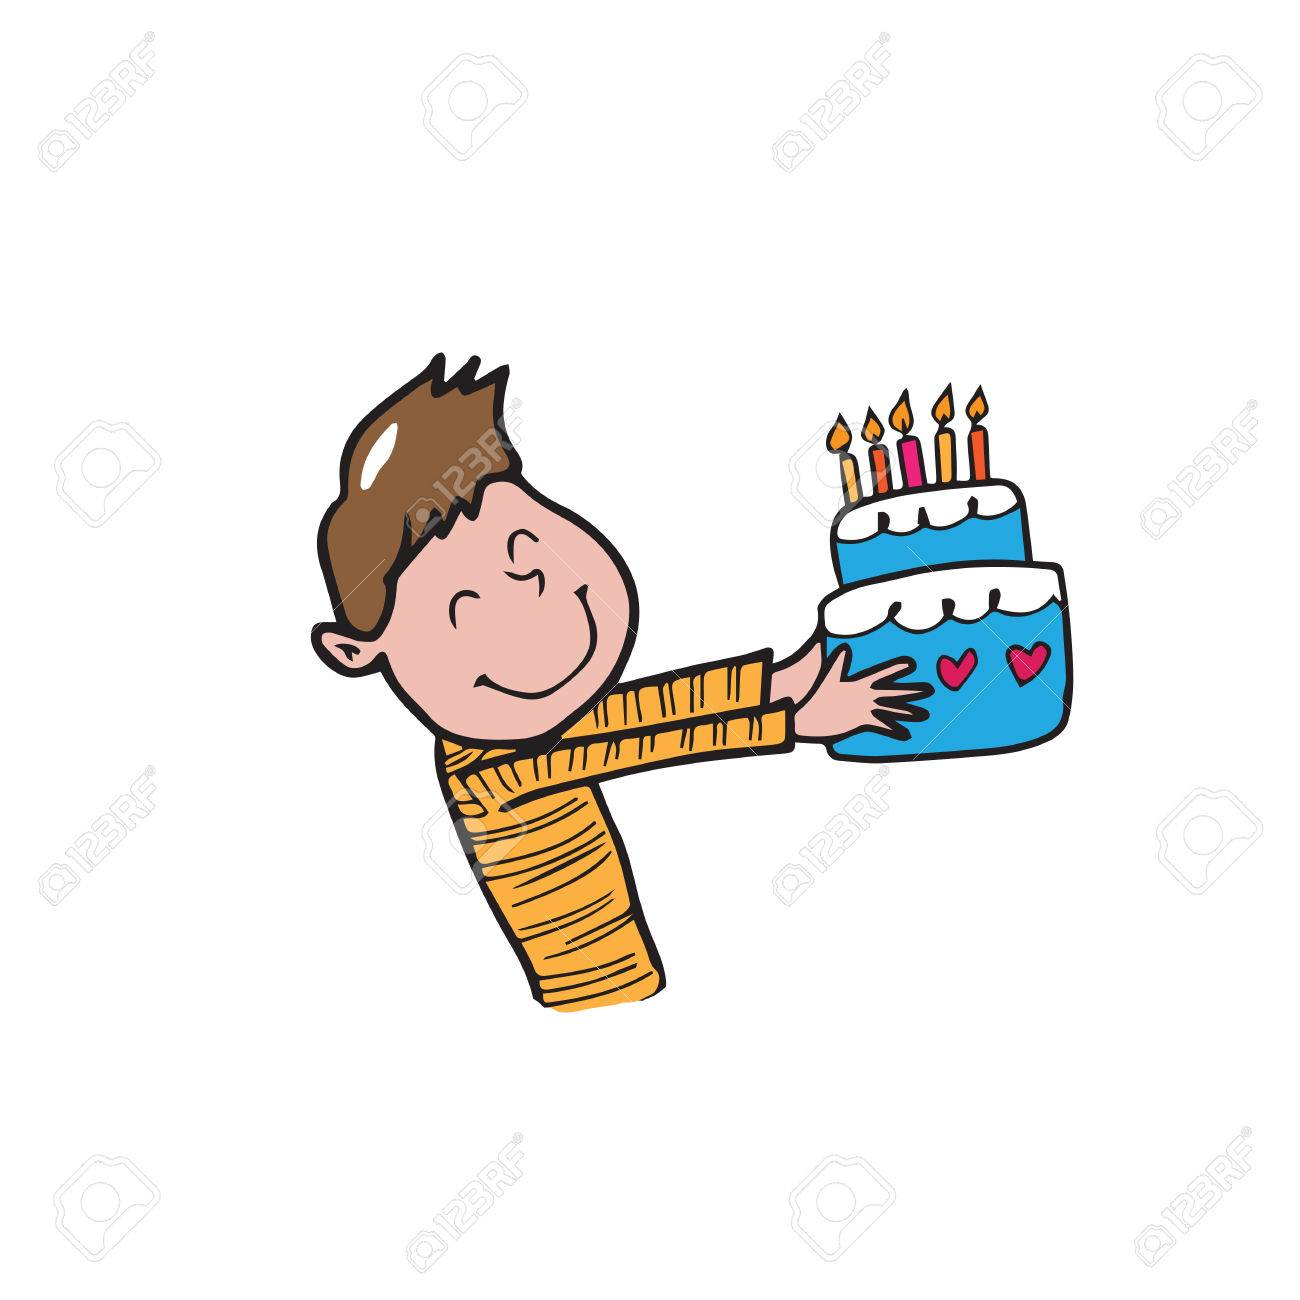 Boy With Birthday Cake Cartoon Vector Royalty Free Cliparts Vectors And Stock Illustration Image 42712615